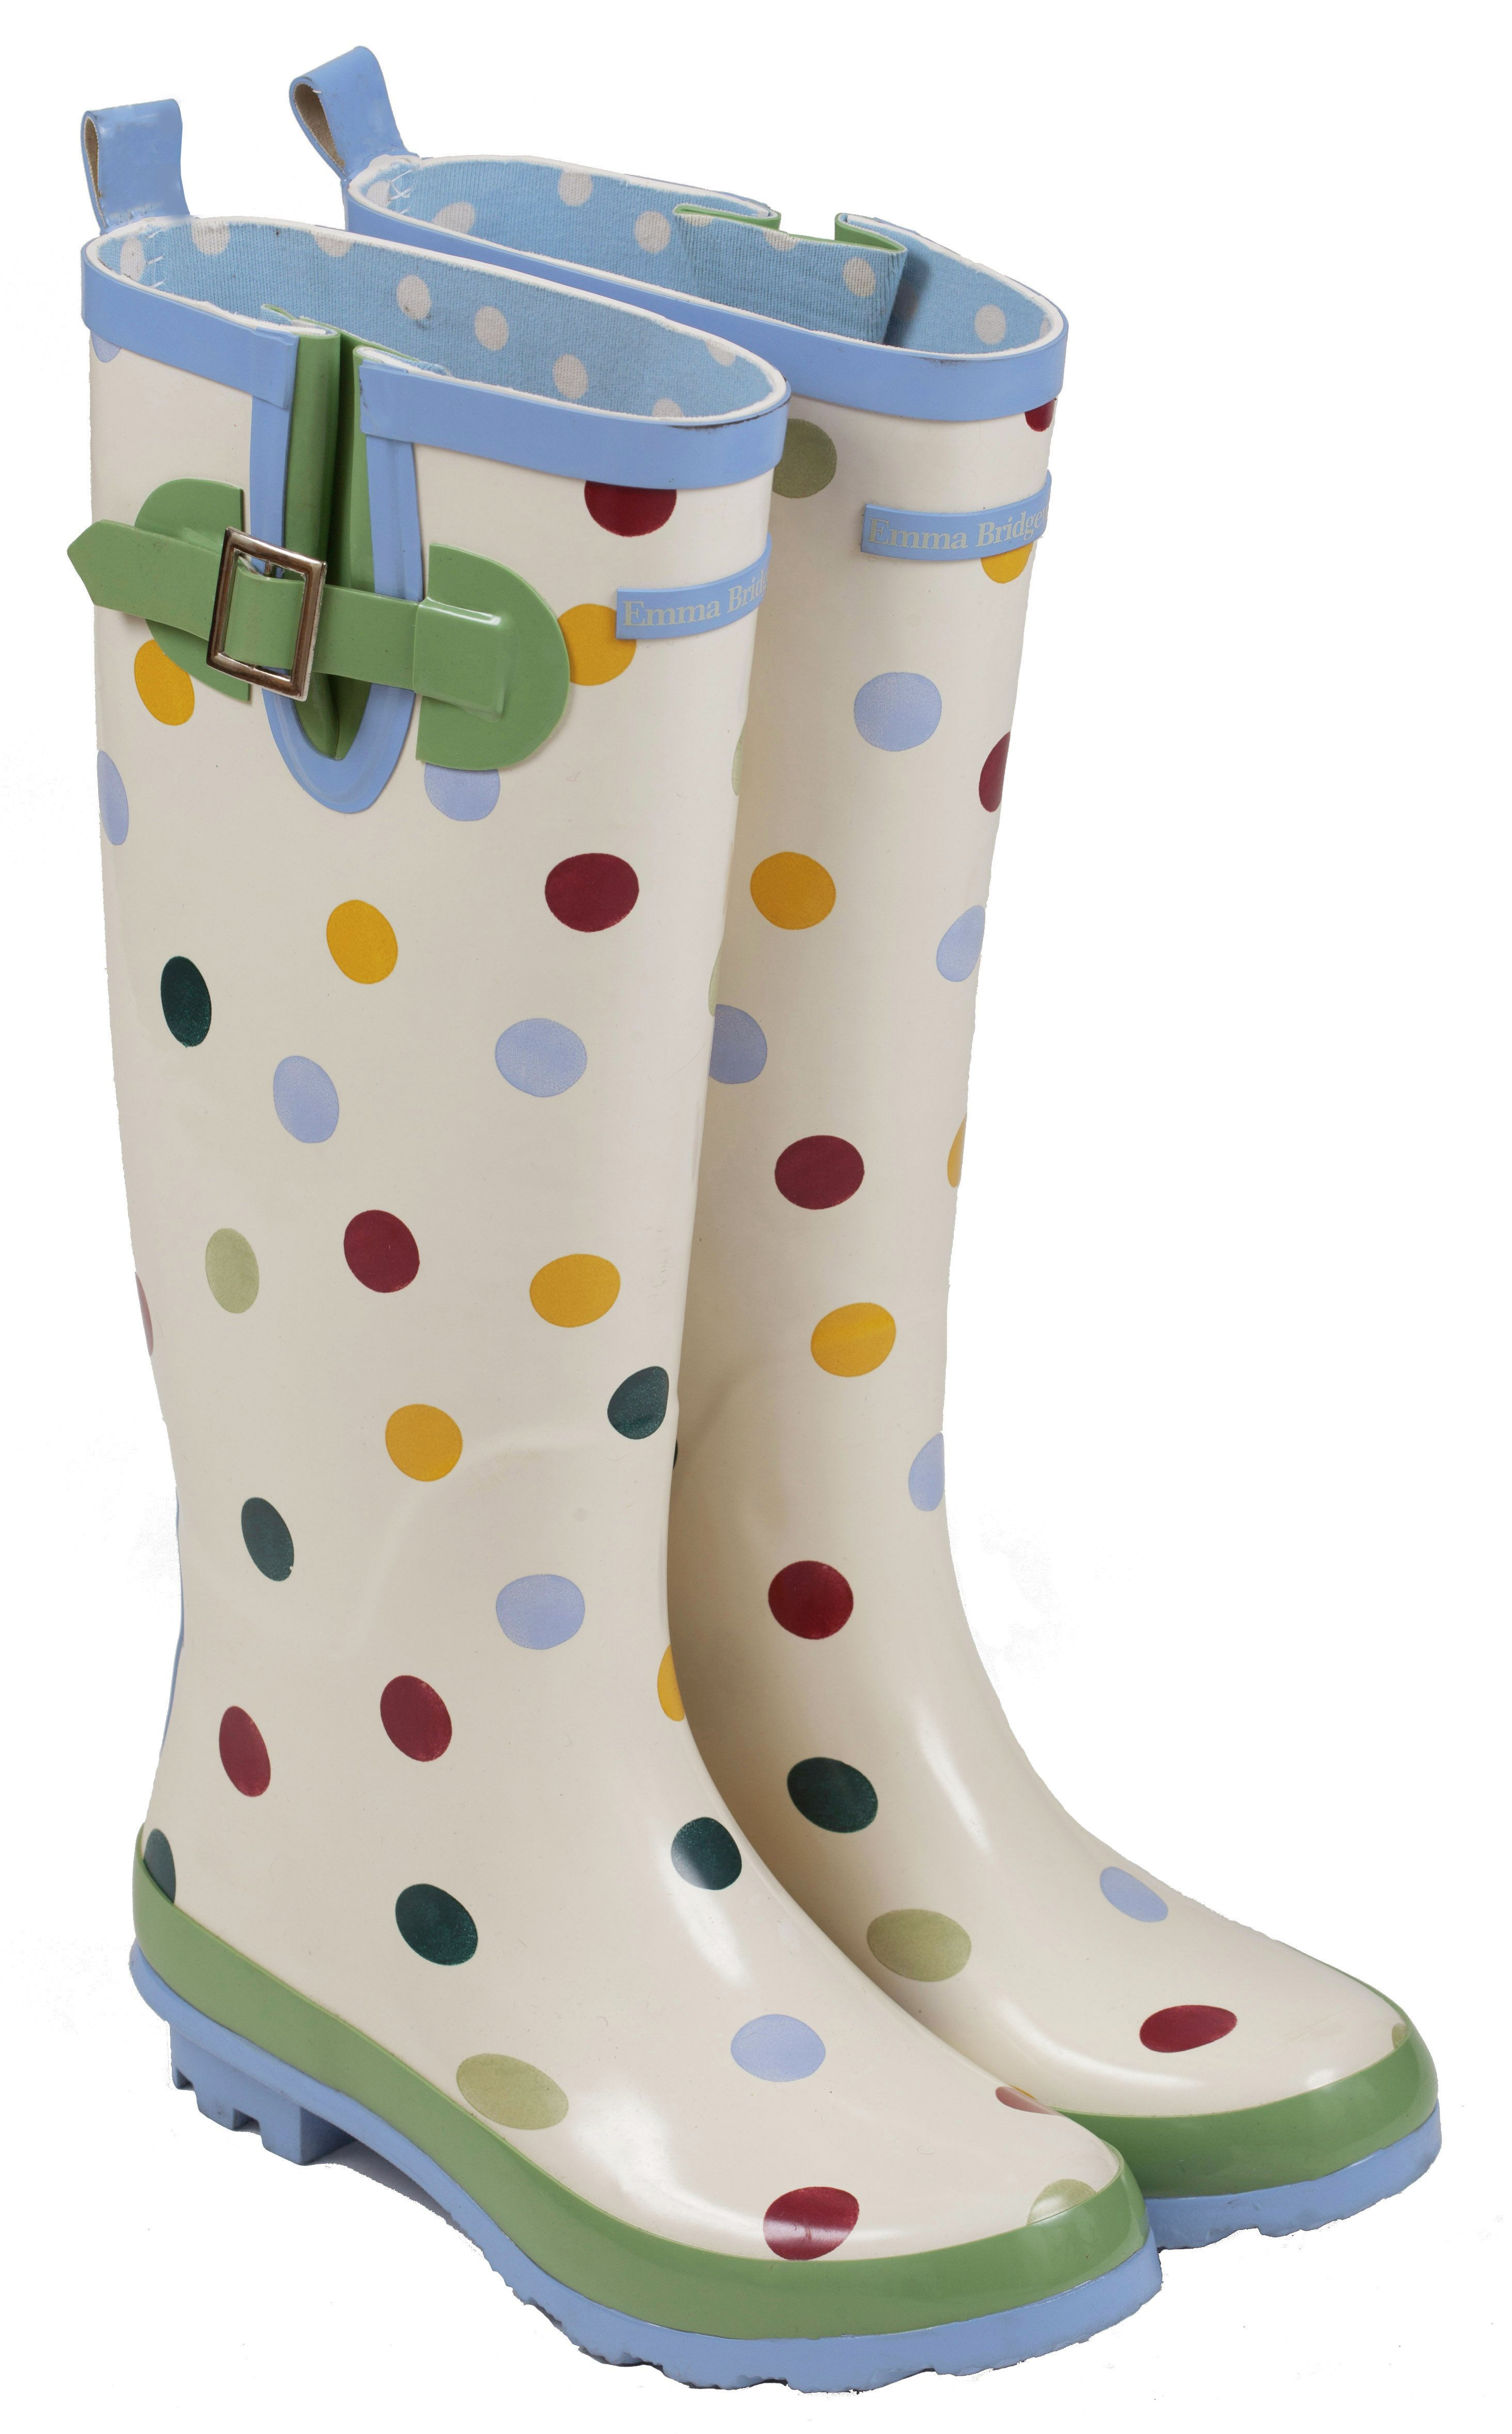 Image of Emma Bridgewater - Womens - Tall Spot Wellies - Size 3